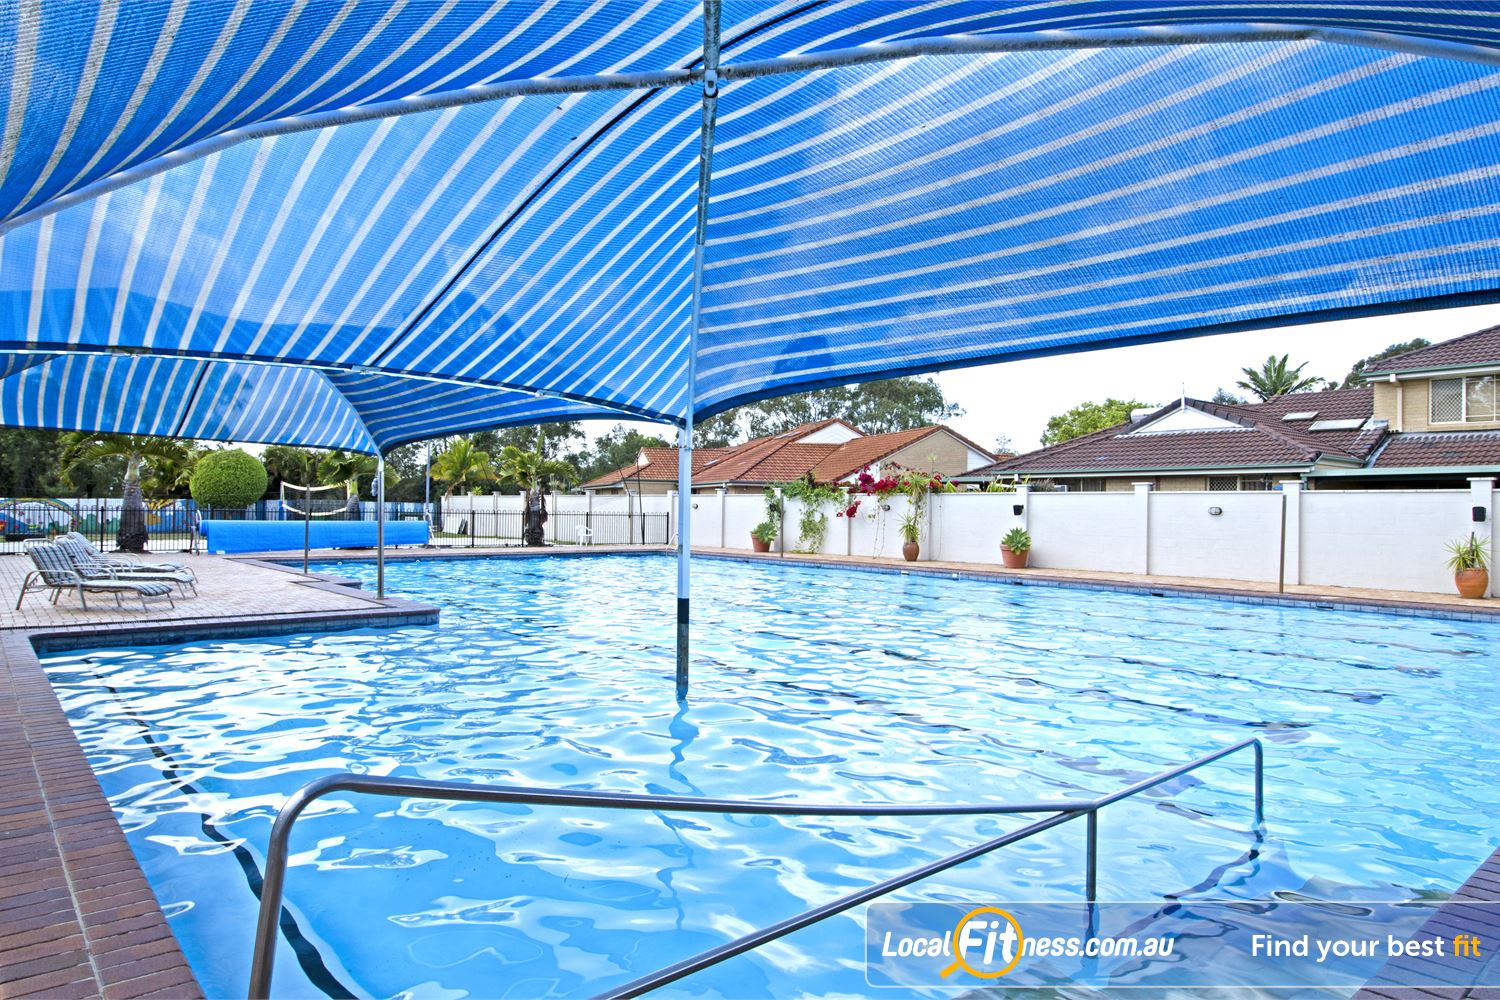 Goodlife Health Clubs Carseldine Undercover toddler swimming pool for your children.